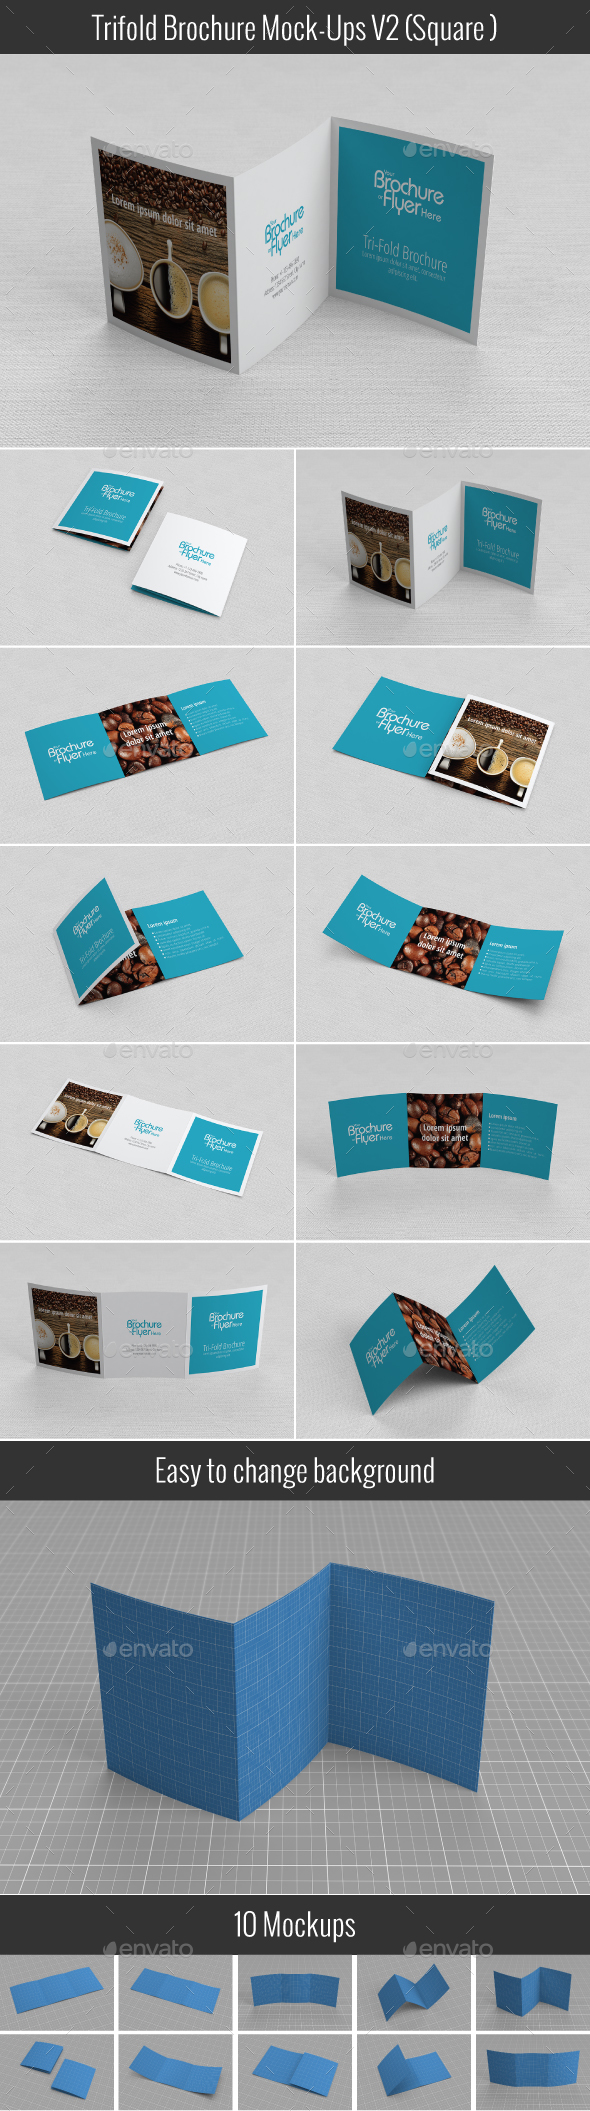 Square Up Graphics, Designs & Templates from GraphicRiver